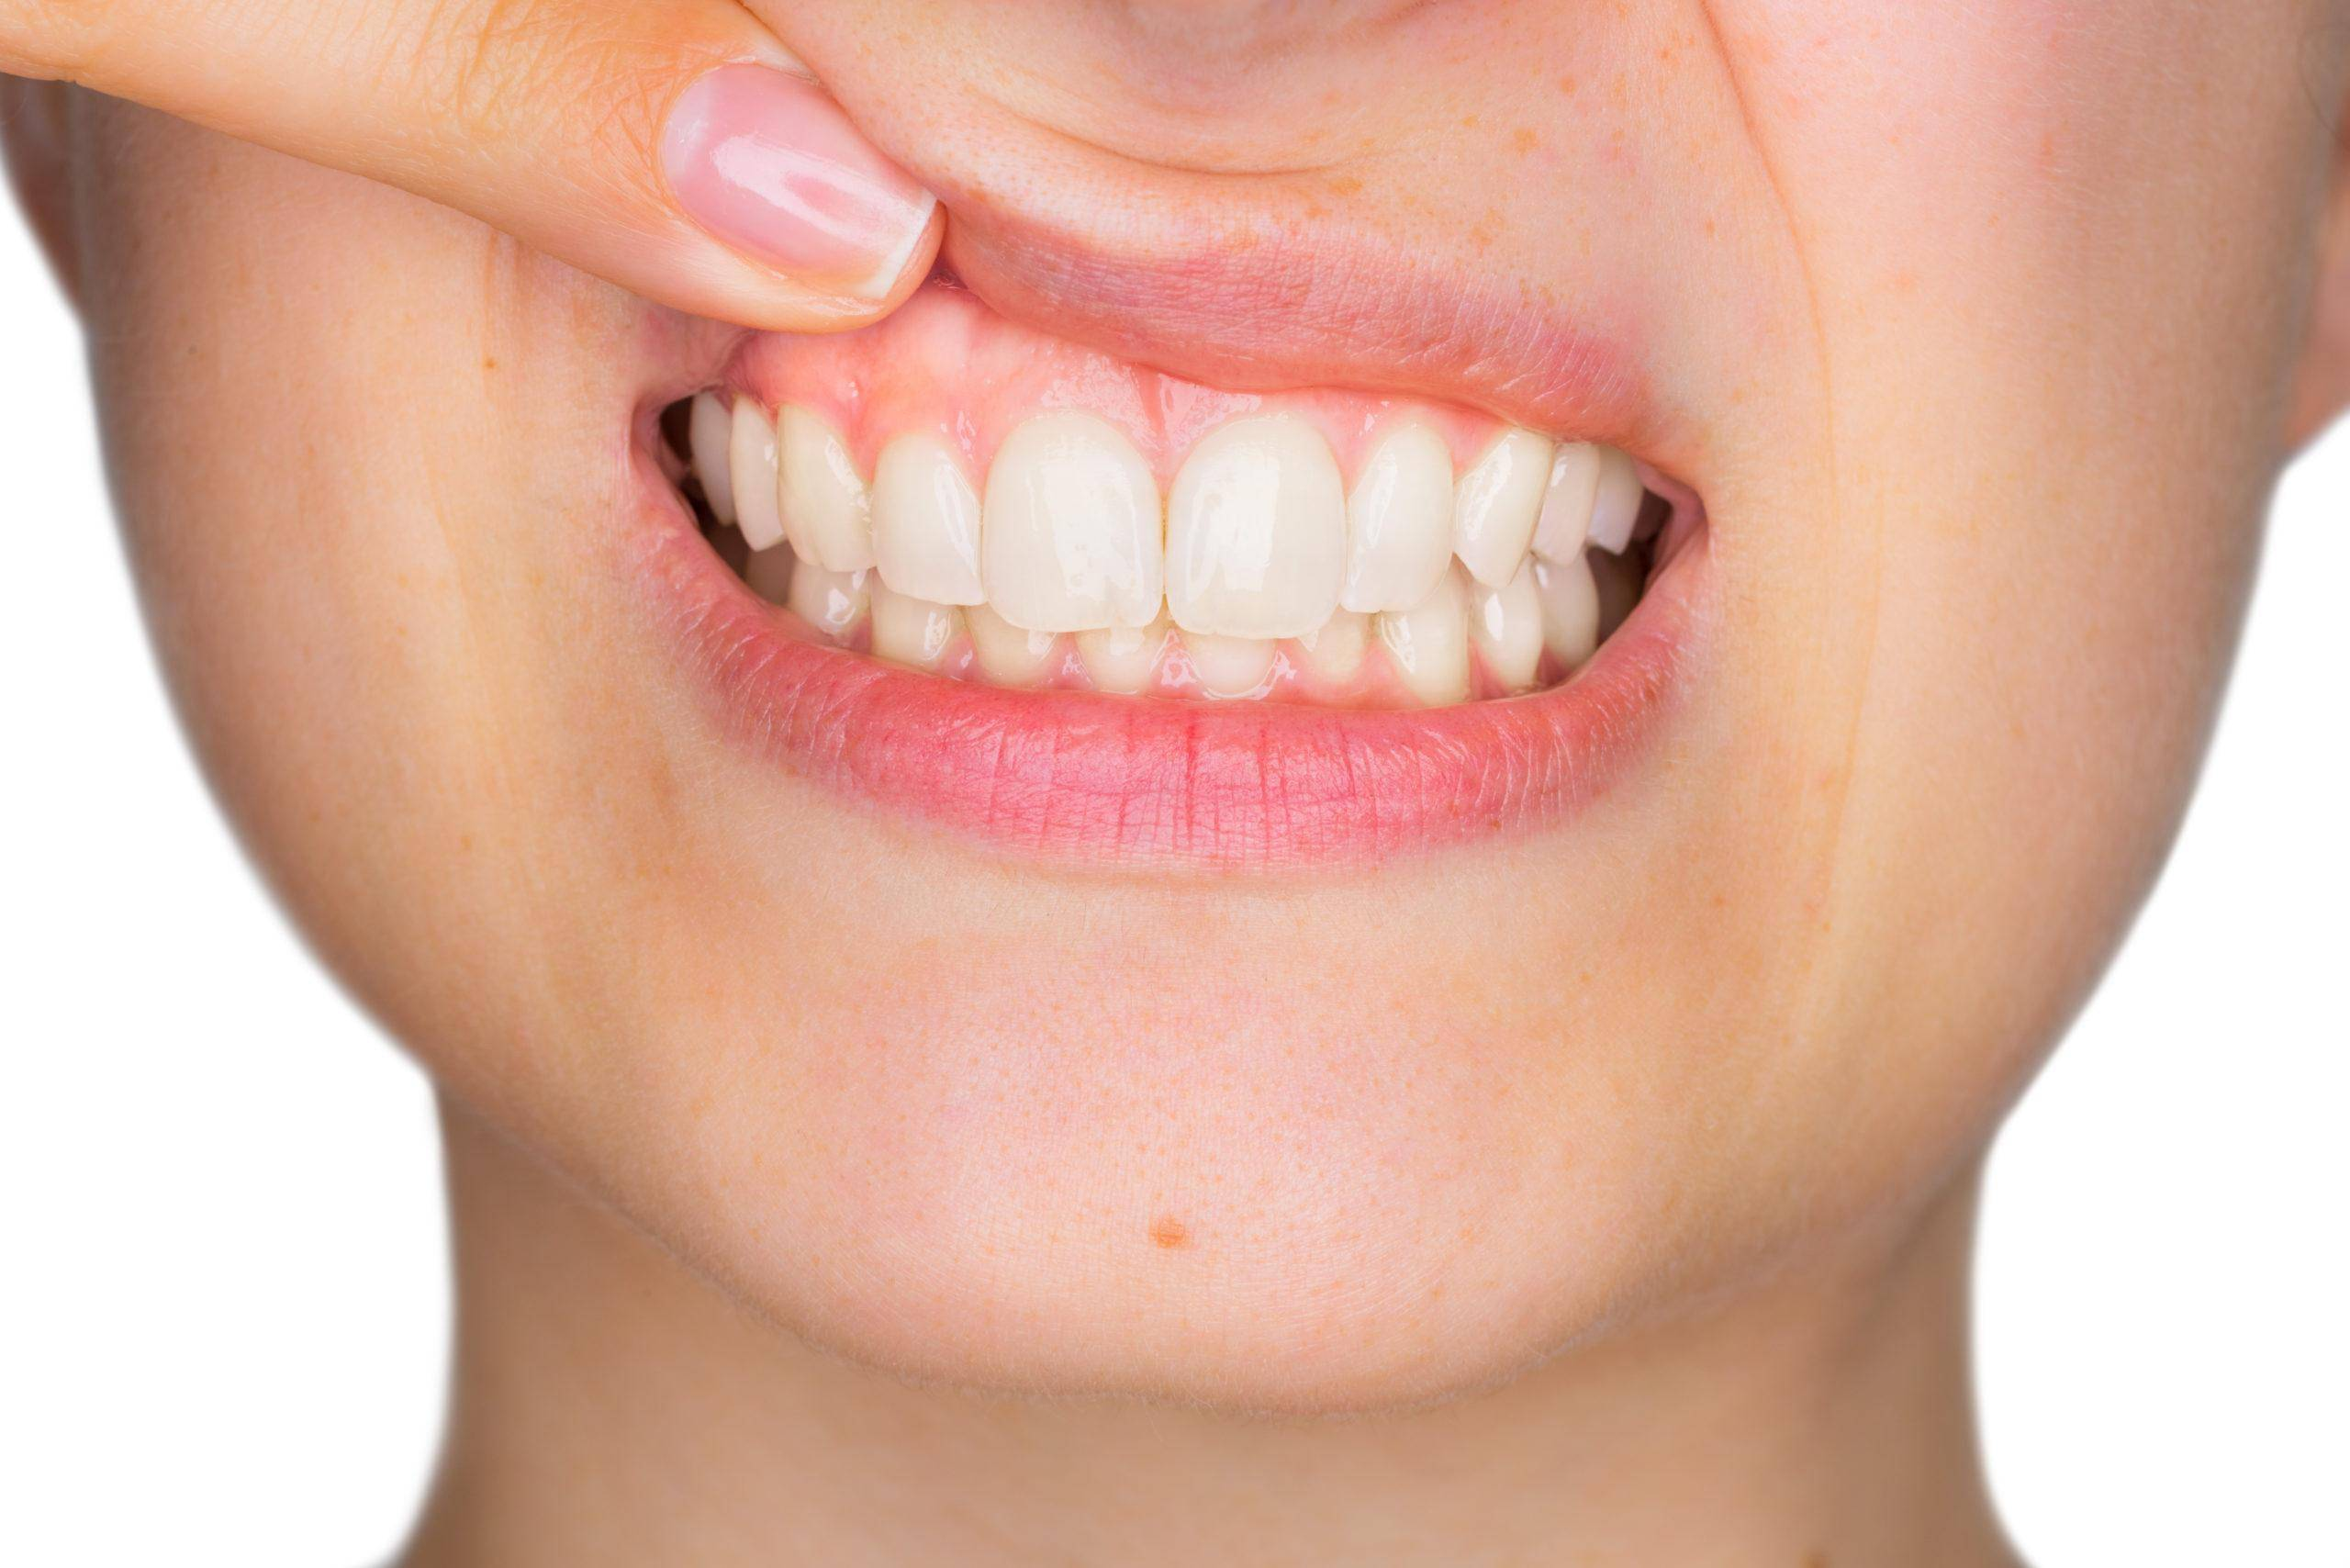 What Are The Benefits Of Gum Rejuvenation Therapy?